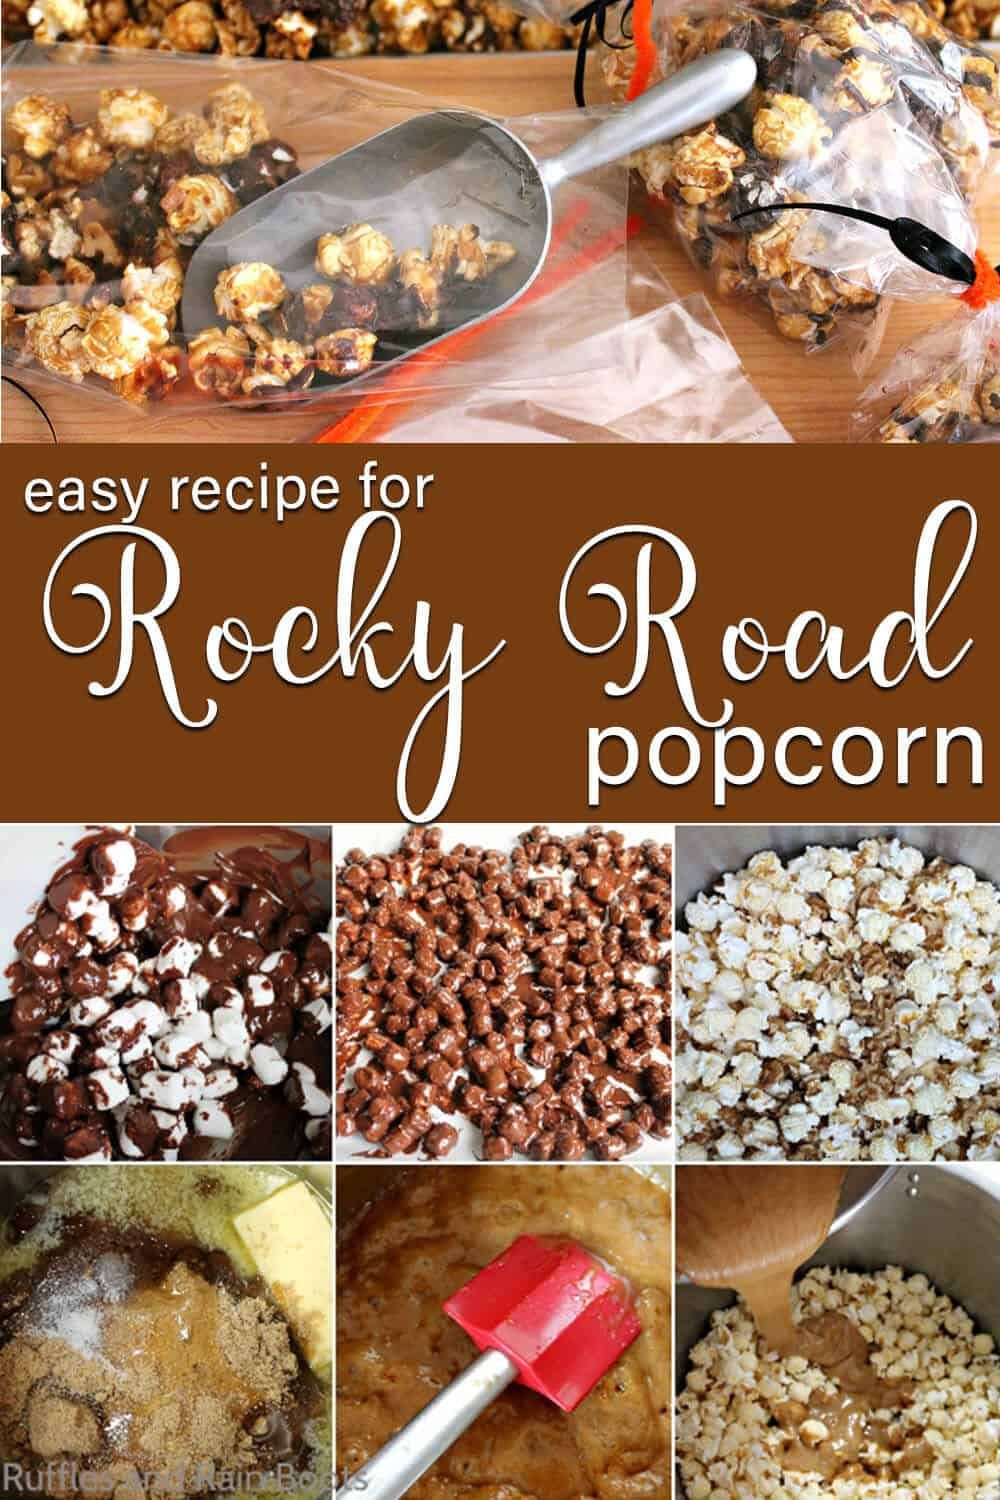 photo collage of easy gourmet popcorn recipe with text which reads easy recipe for Rocky Road Popcorn